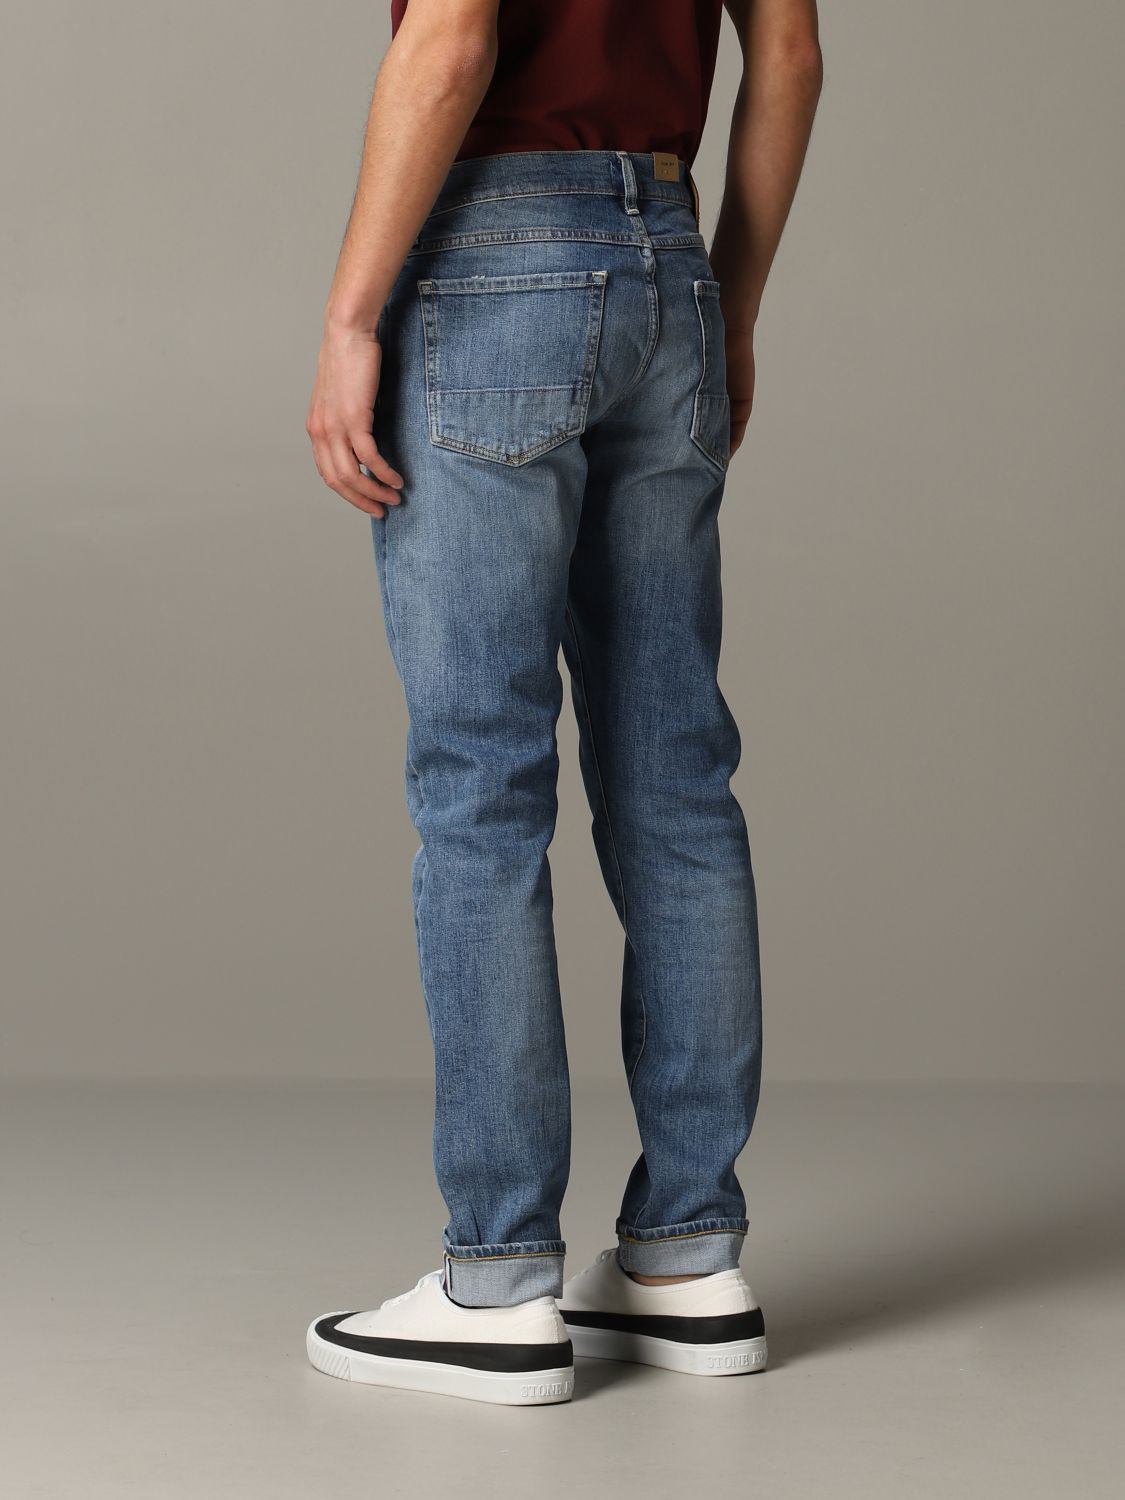 Jeans Tela Geneva in denim used stretch blue 3